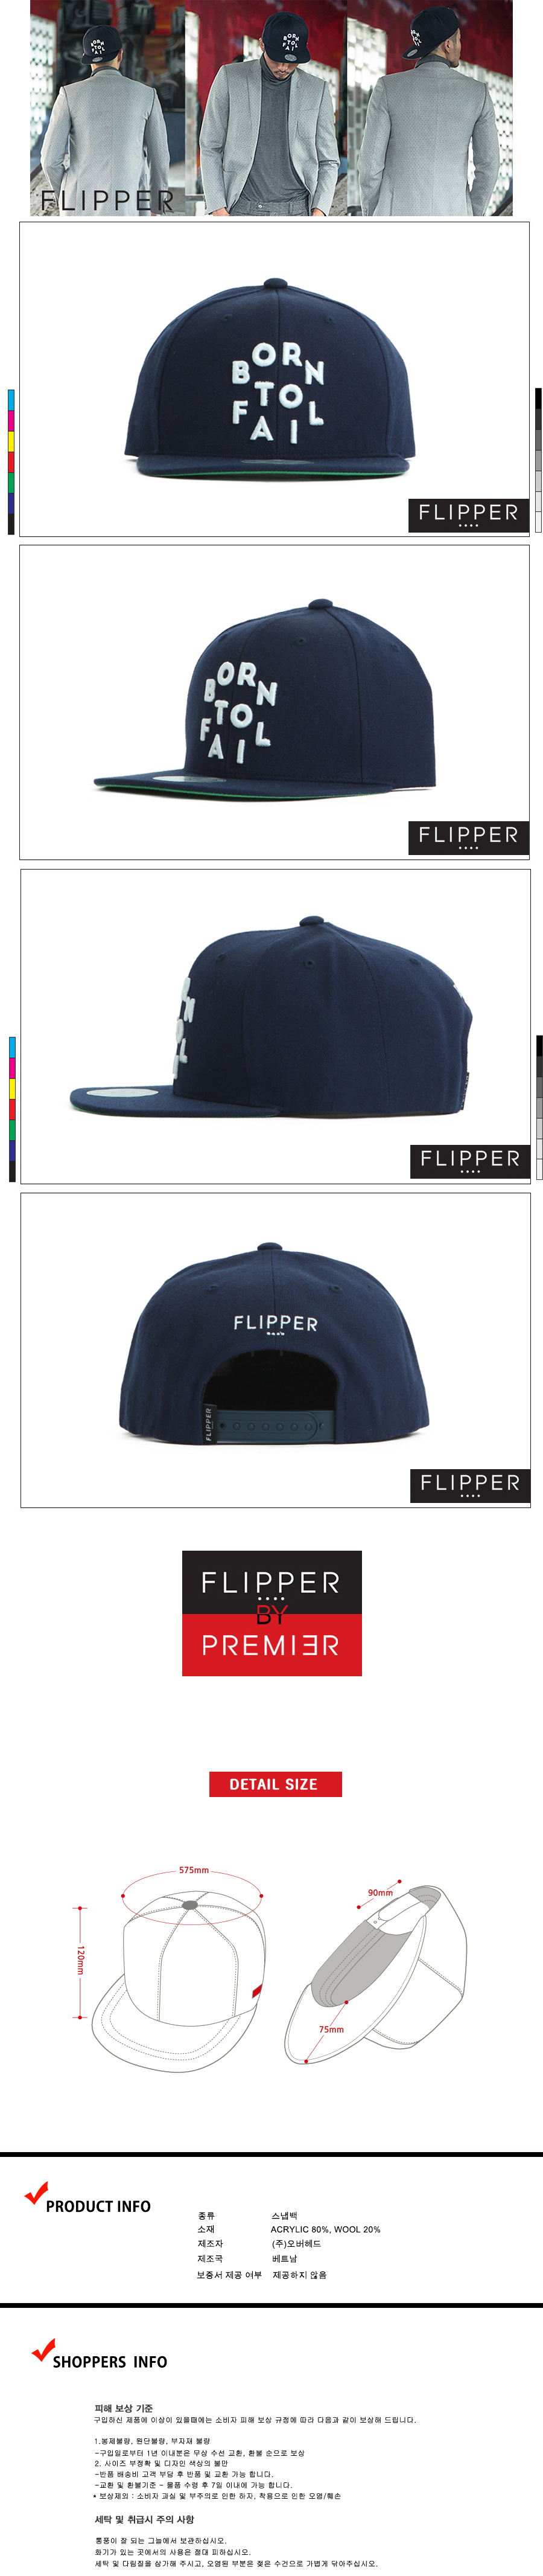 [ PREMIER ] [Premier] Flipper Snapback Born To Fail Navy (FL002)